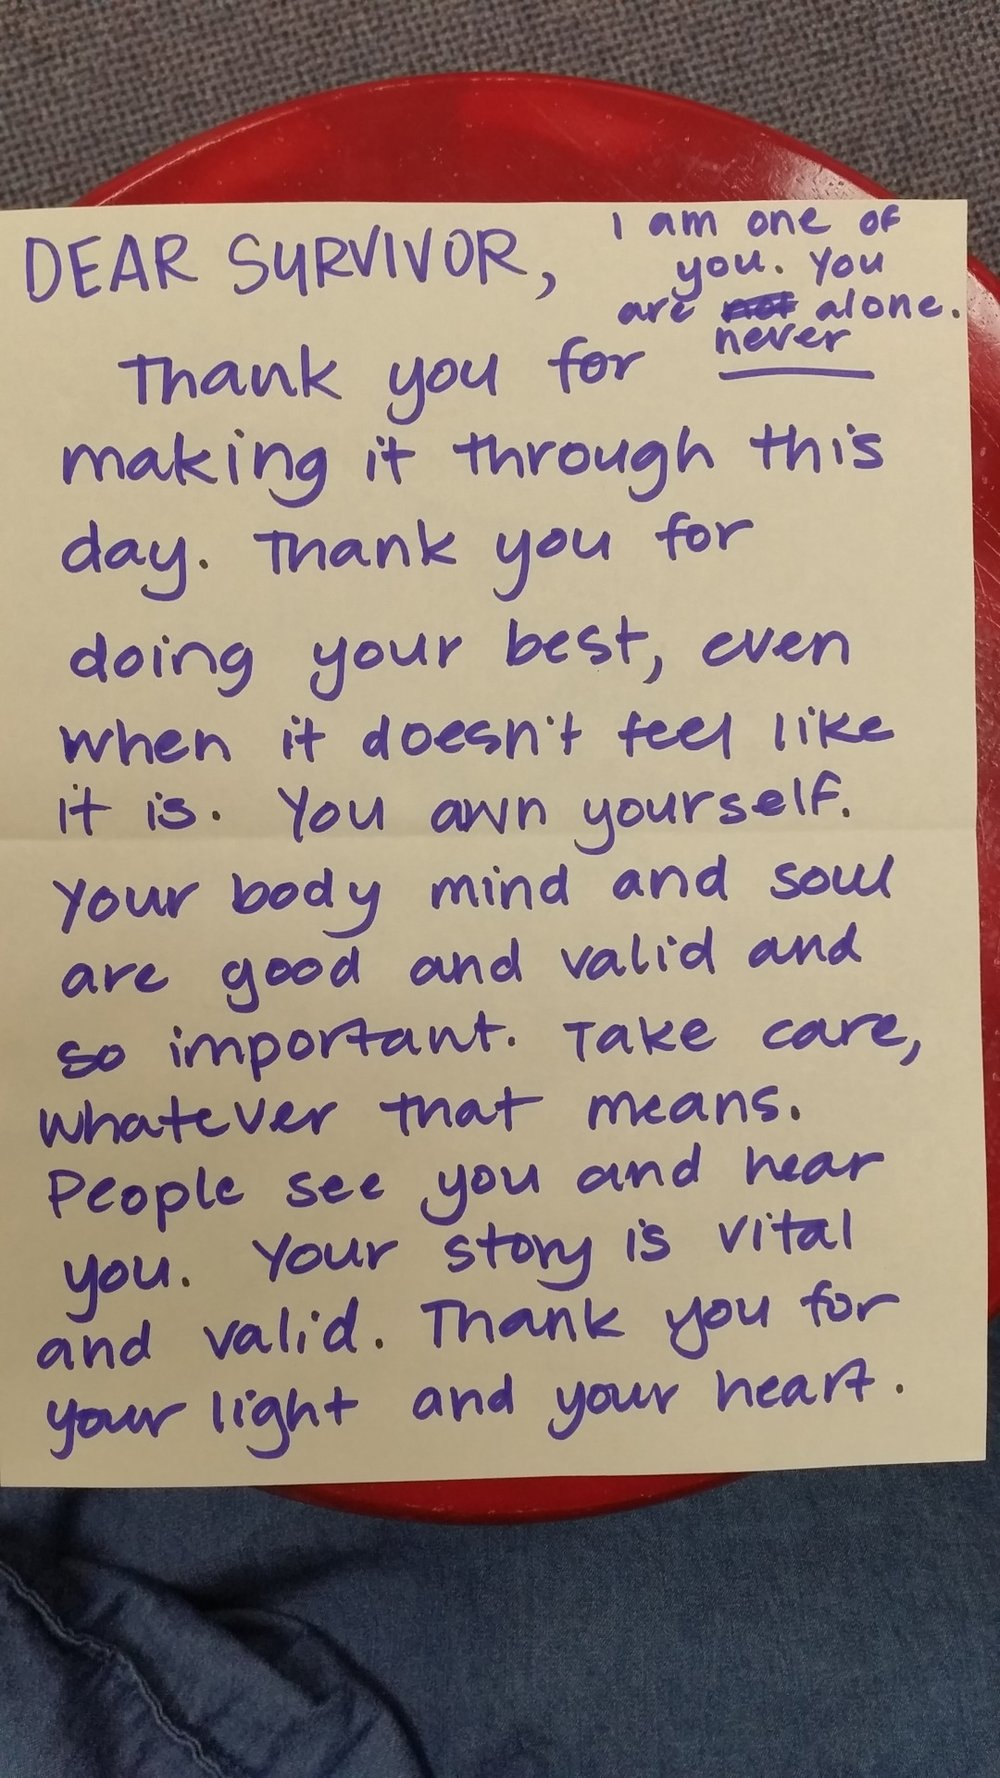 Dear Survivor,   I am one of you. You are  never  alone.   Thank you for making it through this day. Thank you for doing your best, even when it doesn't feel like it is. You own yourself. Your body mind and soul are good and valid and so important. Take care, whatever that means. People see you and hear you. Your story is vital and valid. Thank you for your light and your heart.